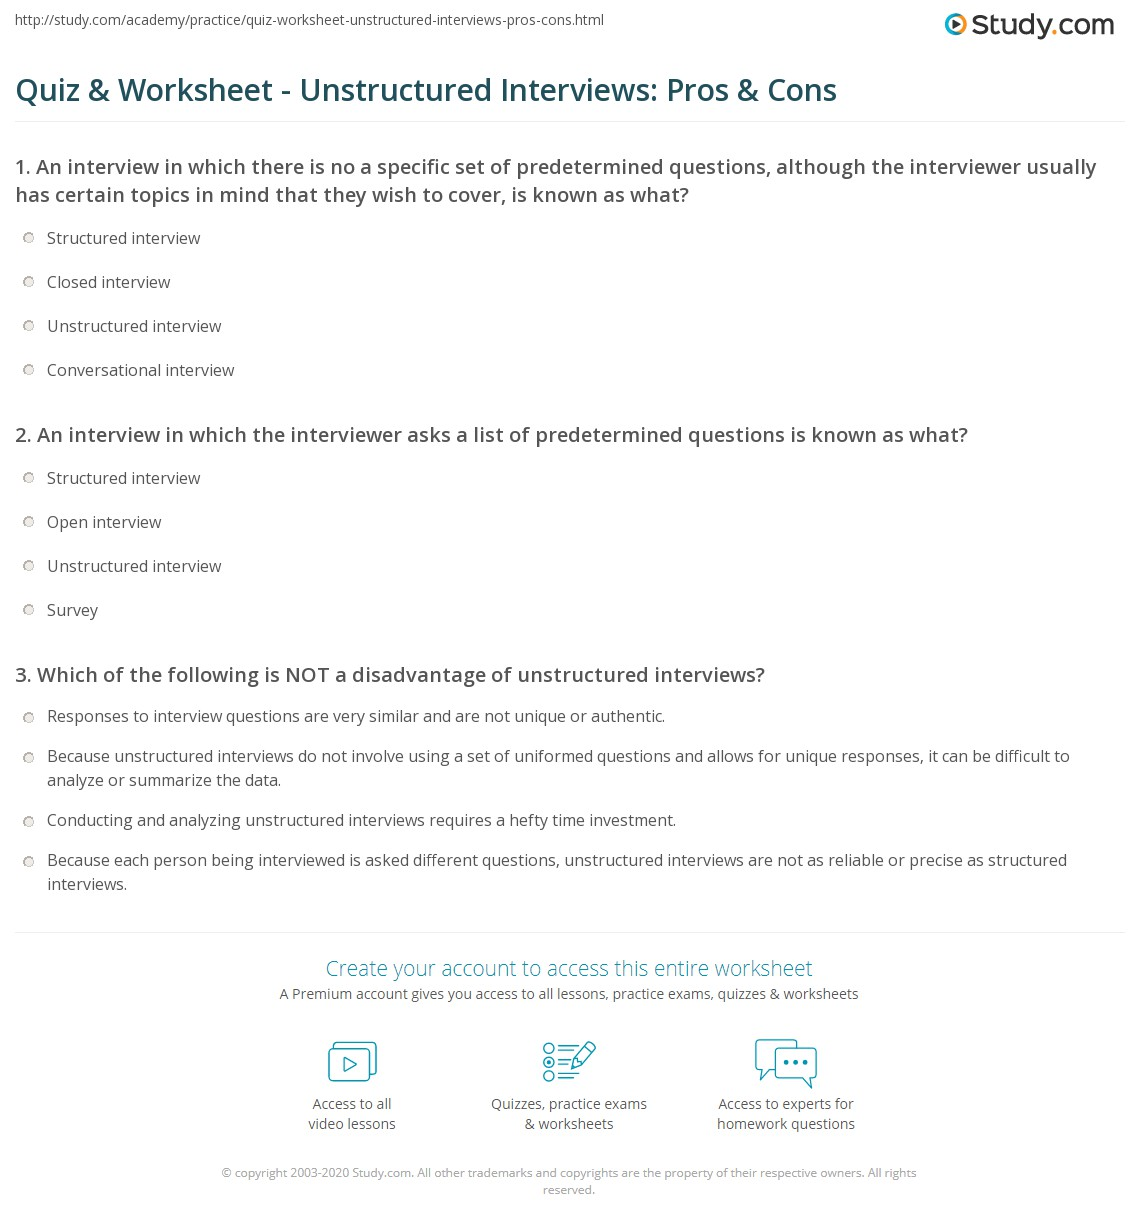 quiz worksheet unstructured interviews pros cons study com an interview in which the interviewer asks a list of predetermined questions is known as what structured interview